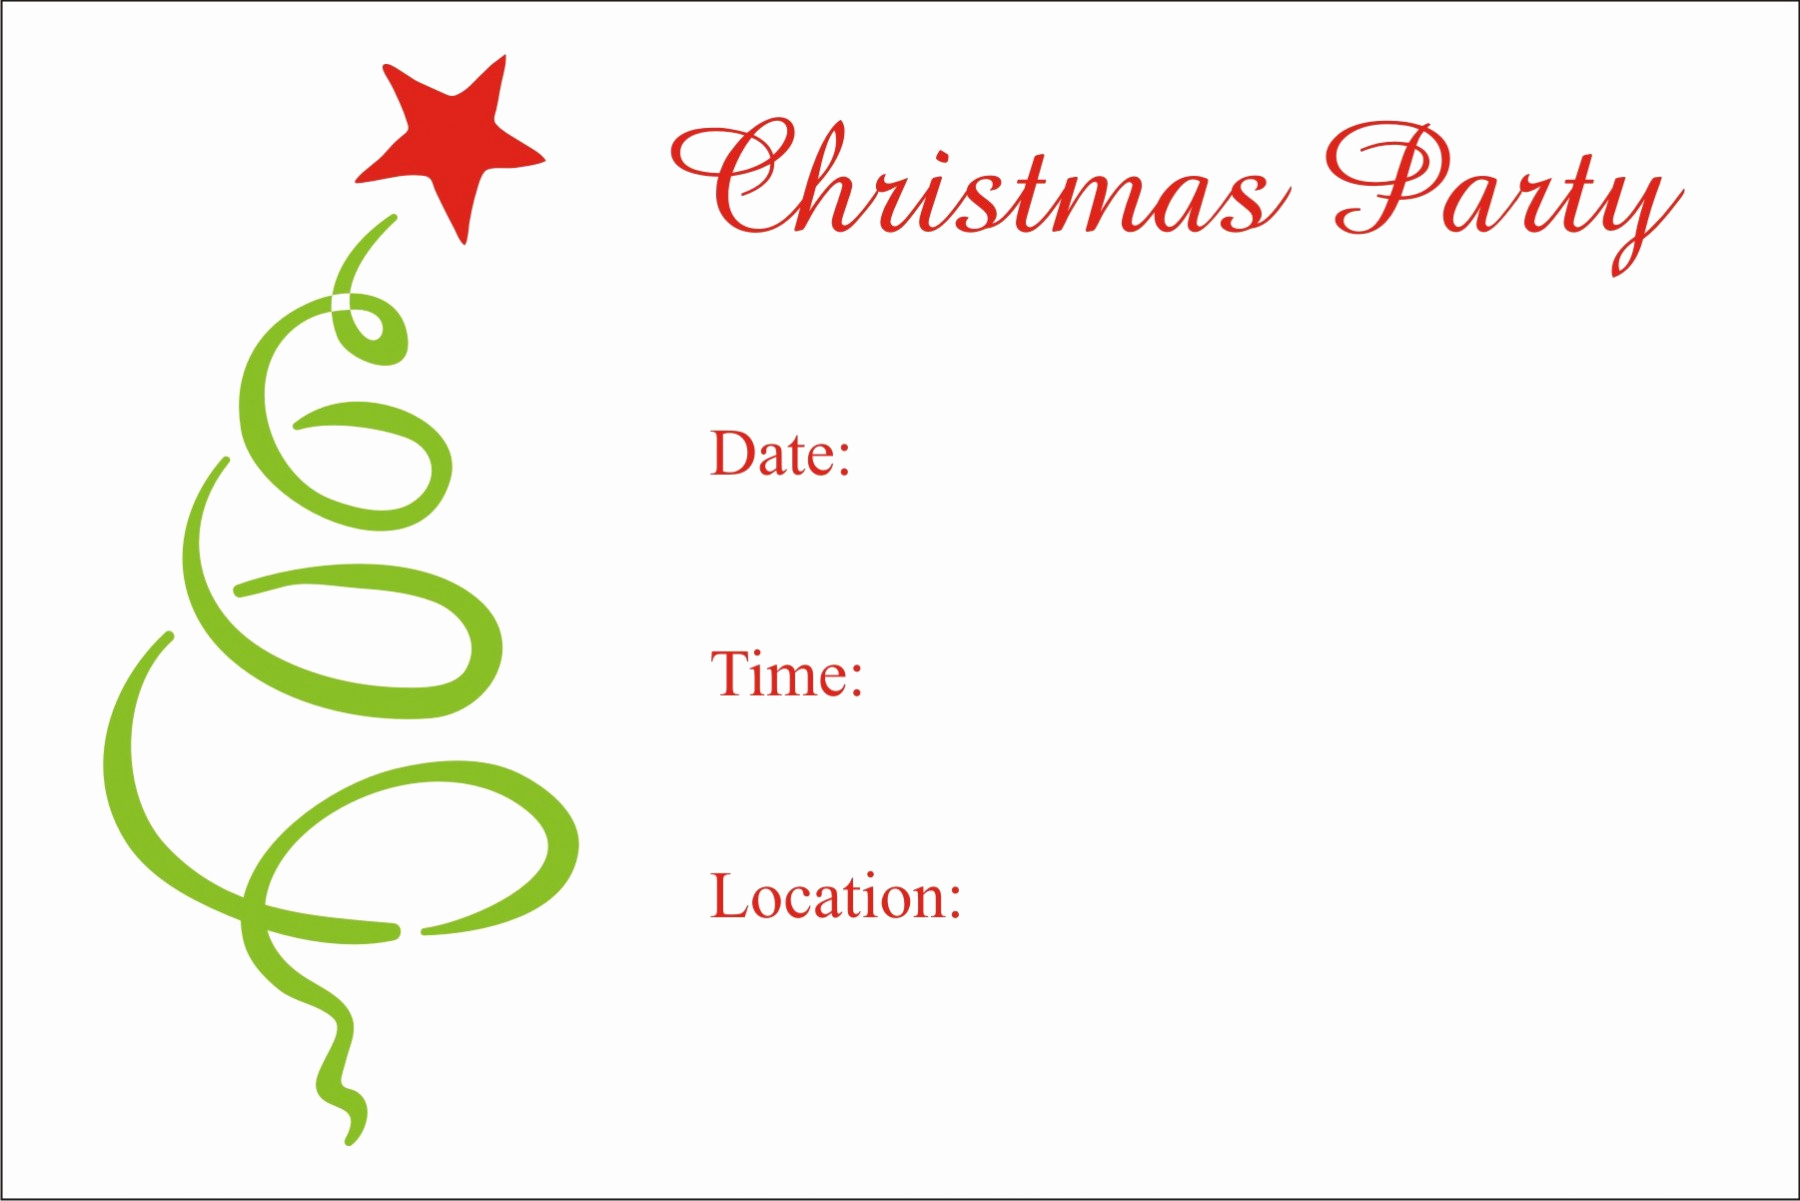 Holiday Party Invitation Template Elegant Christmas Party Free Printable Holiday Invitation